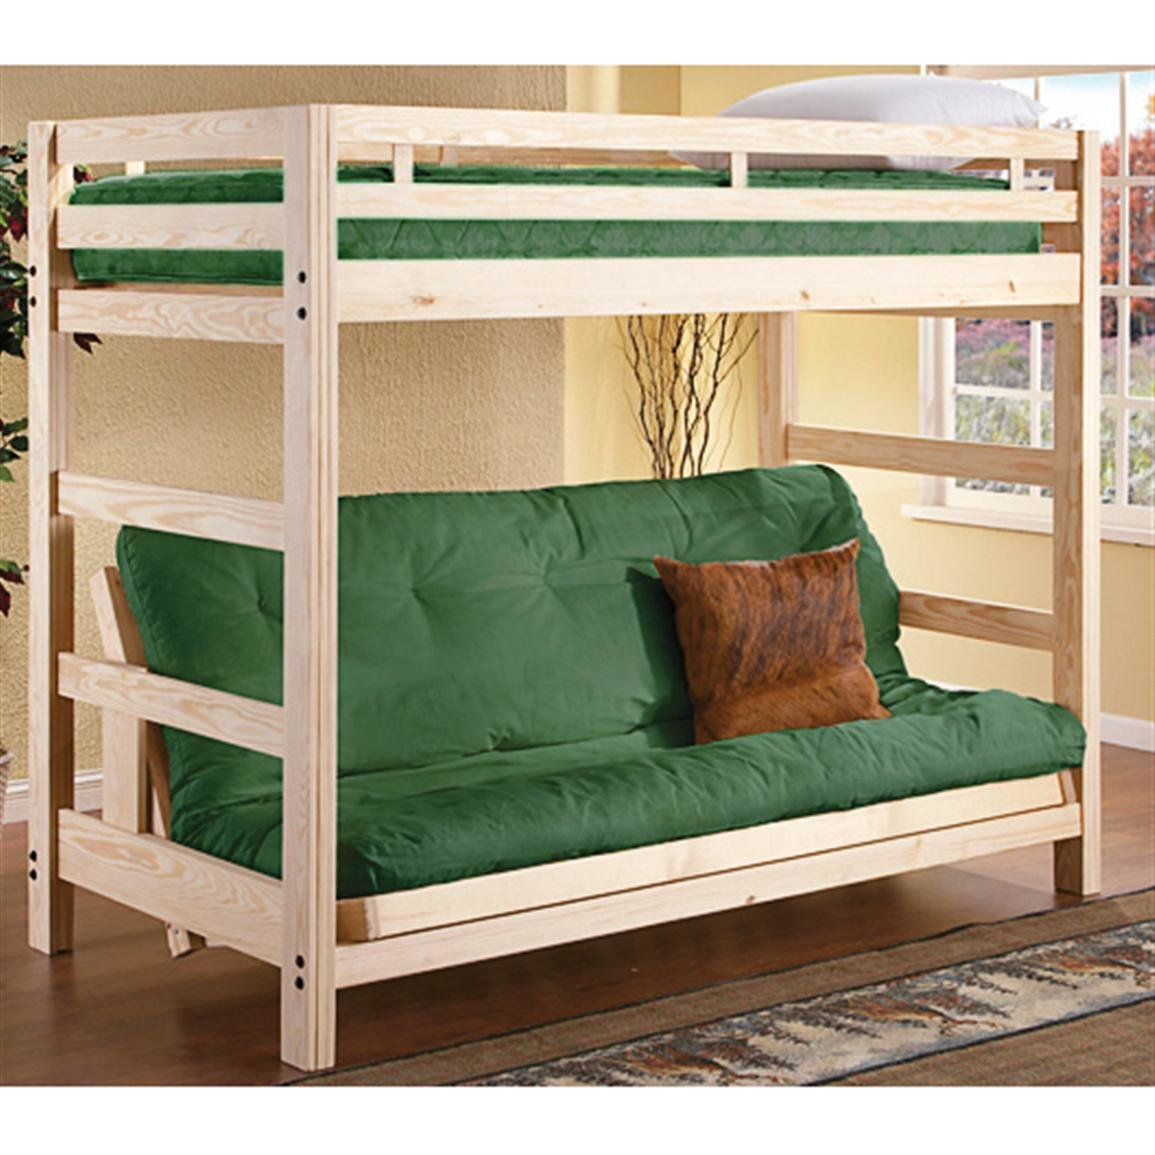 Best 8 Twin Futon Mattress Green 89201 Bedroom Furniture With Pictures